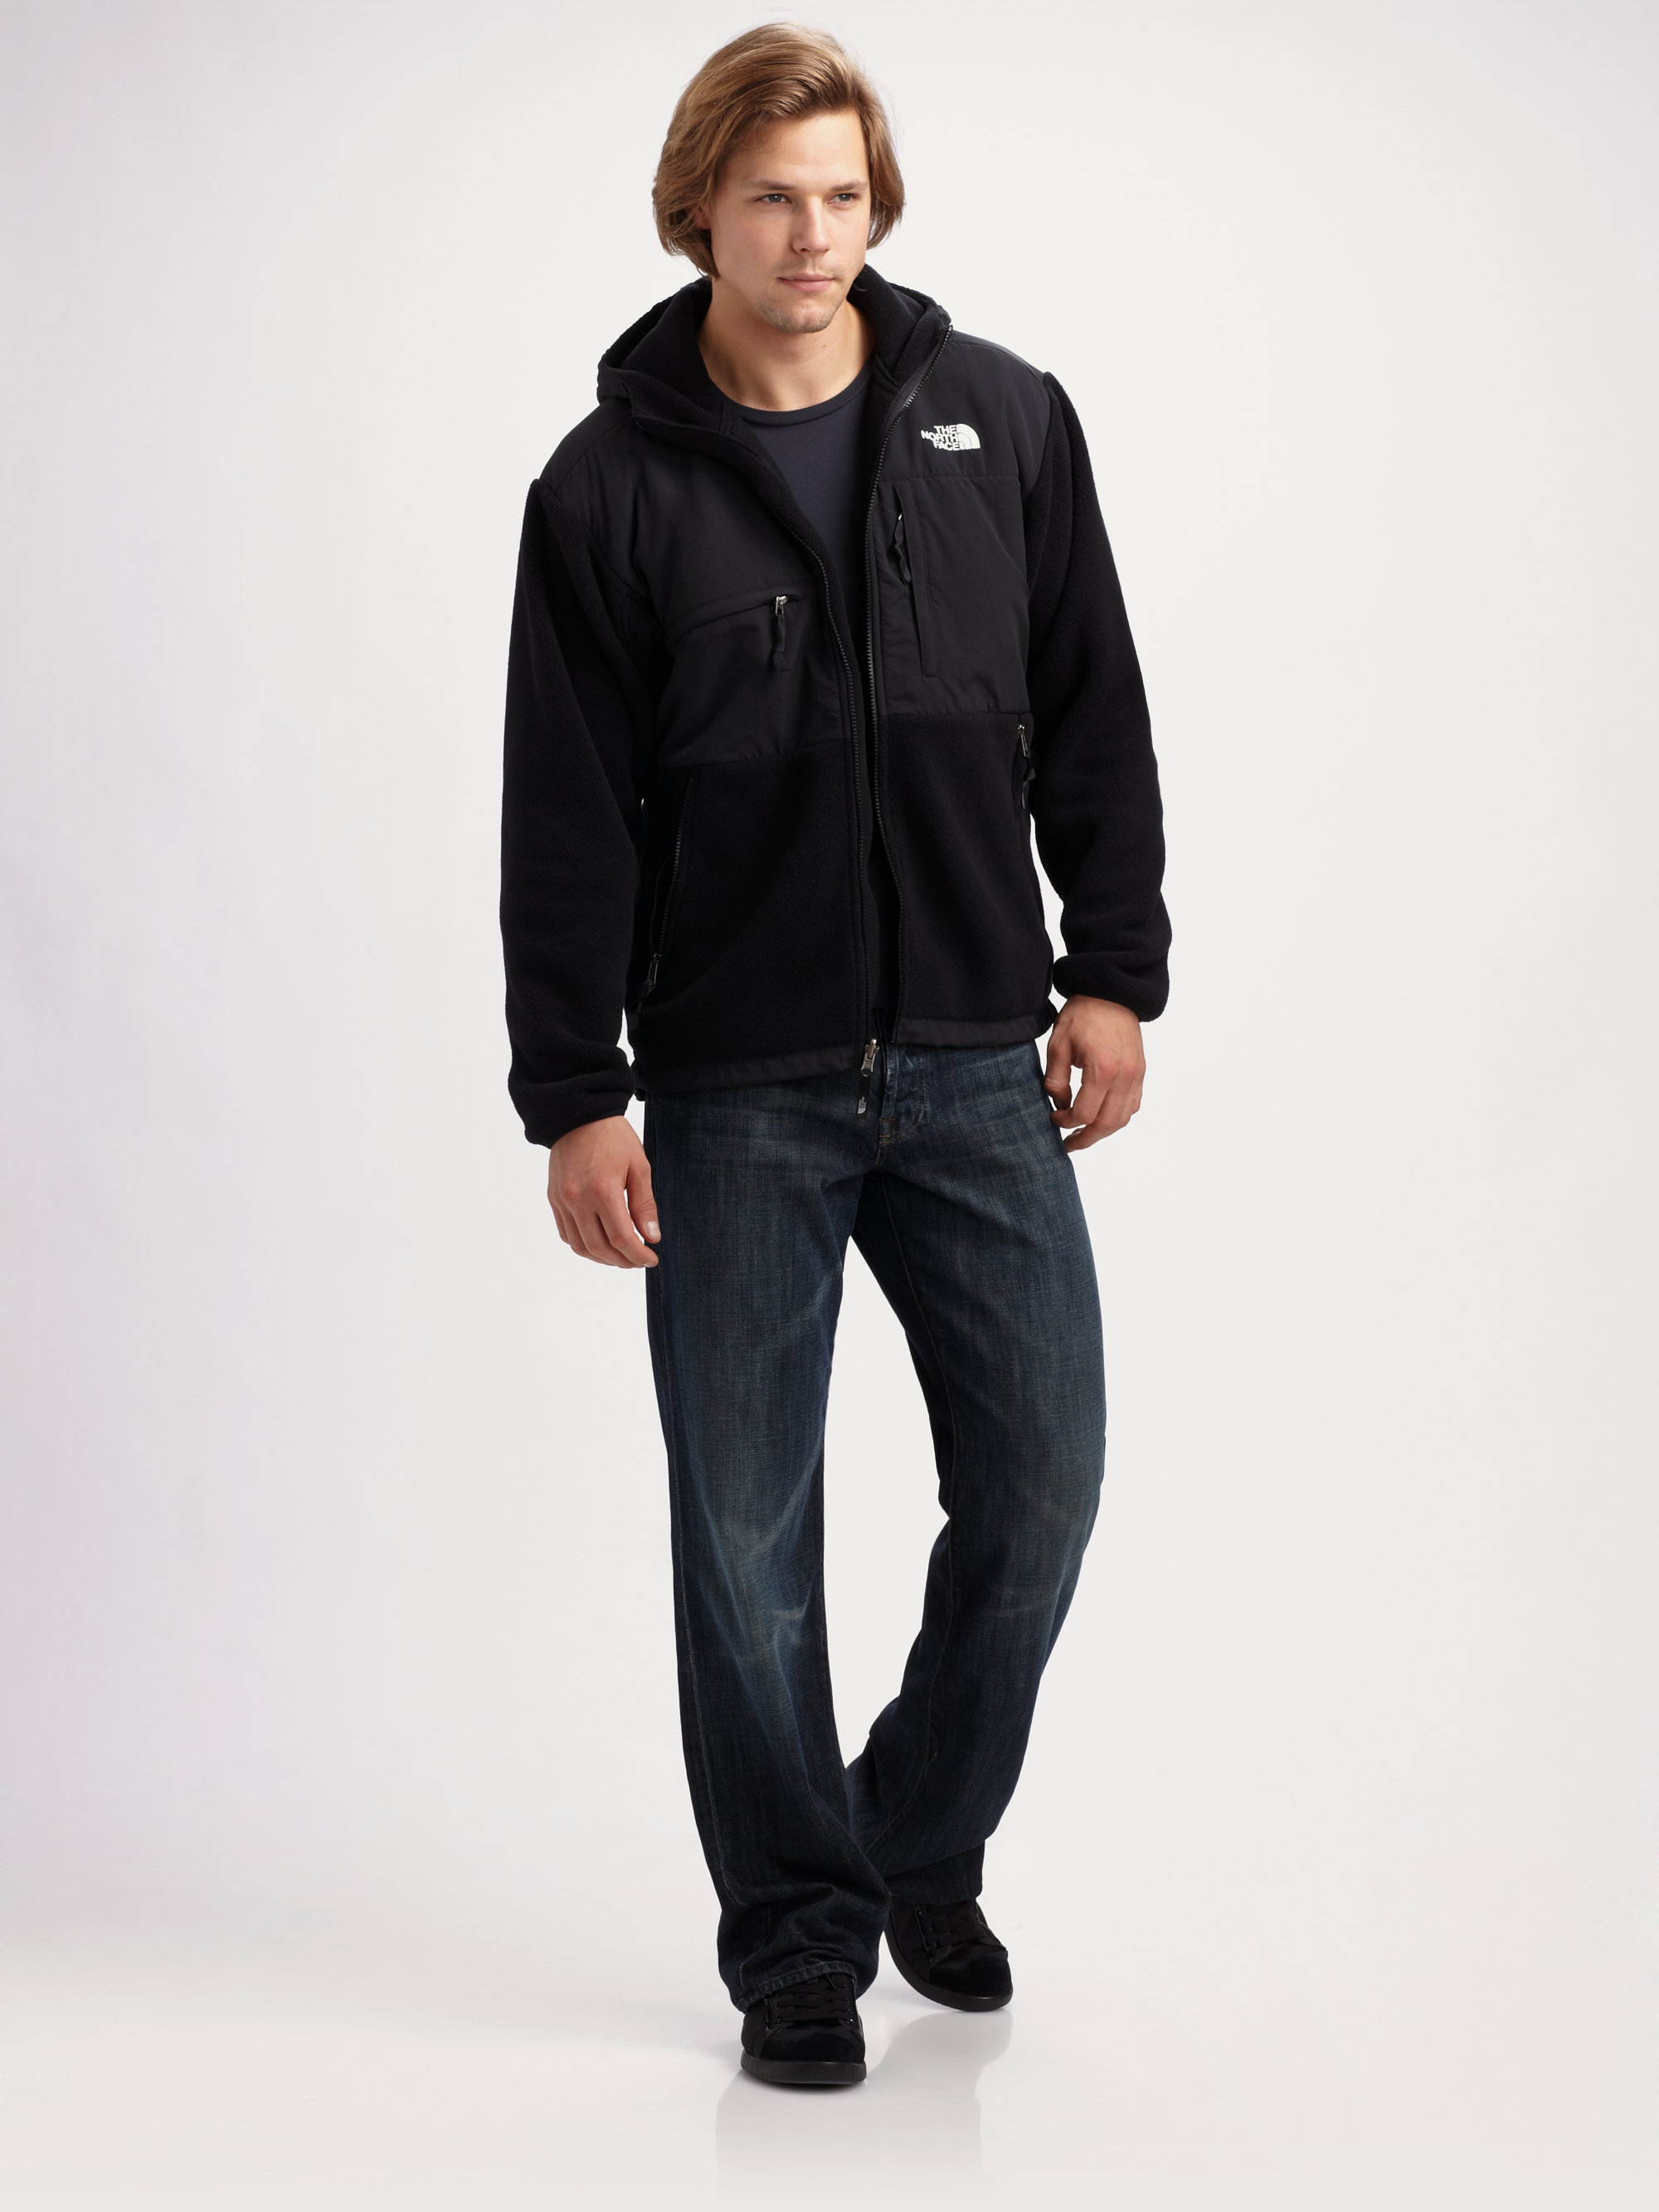 c735048c76d0 ... spain coupon code for lyst the north face hooded fleece jacket in black  for men f62d6